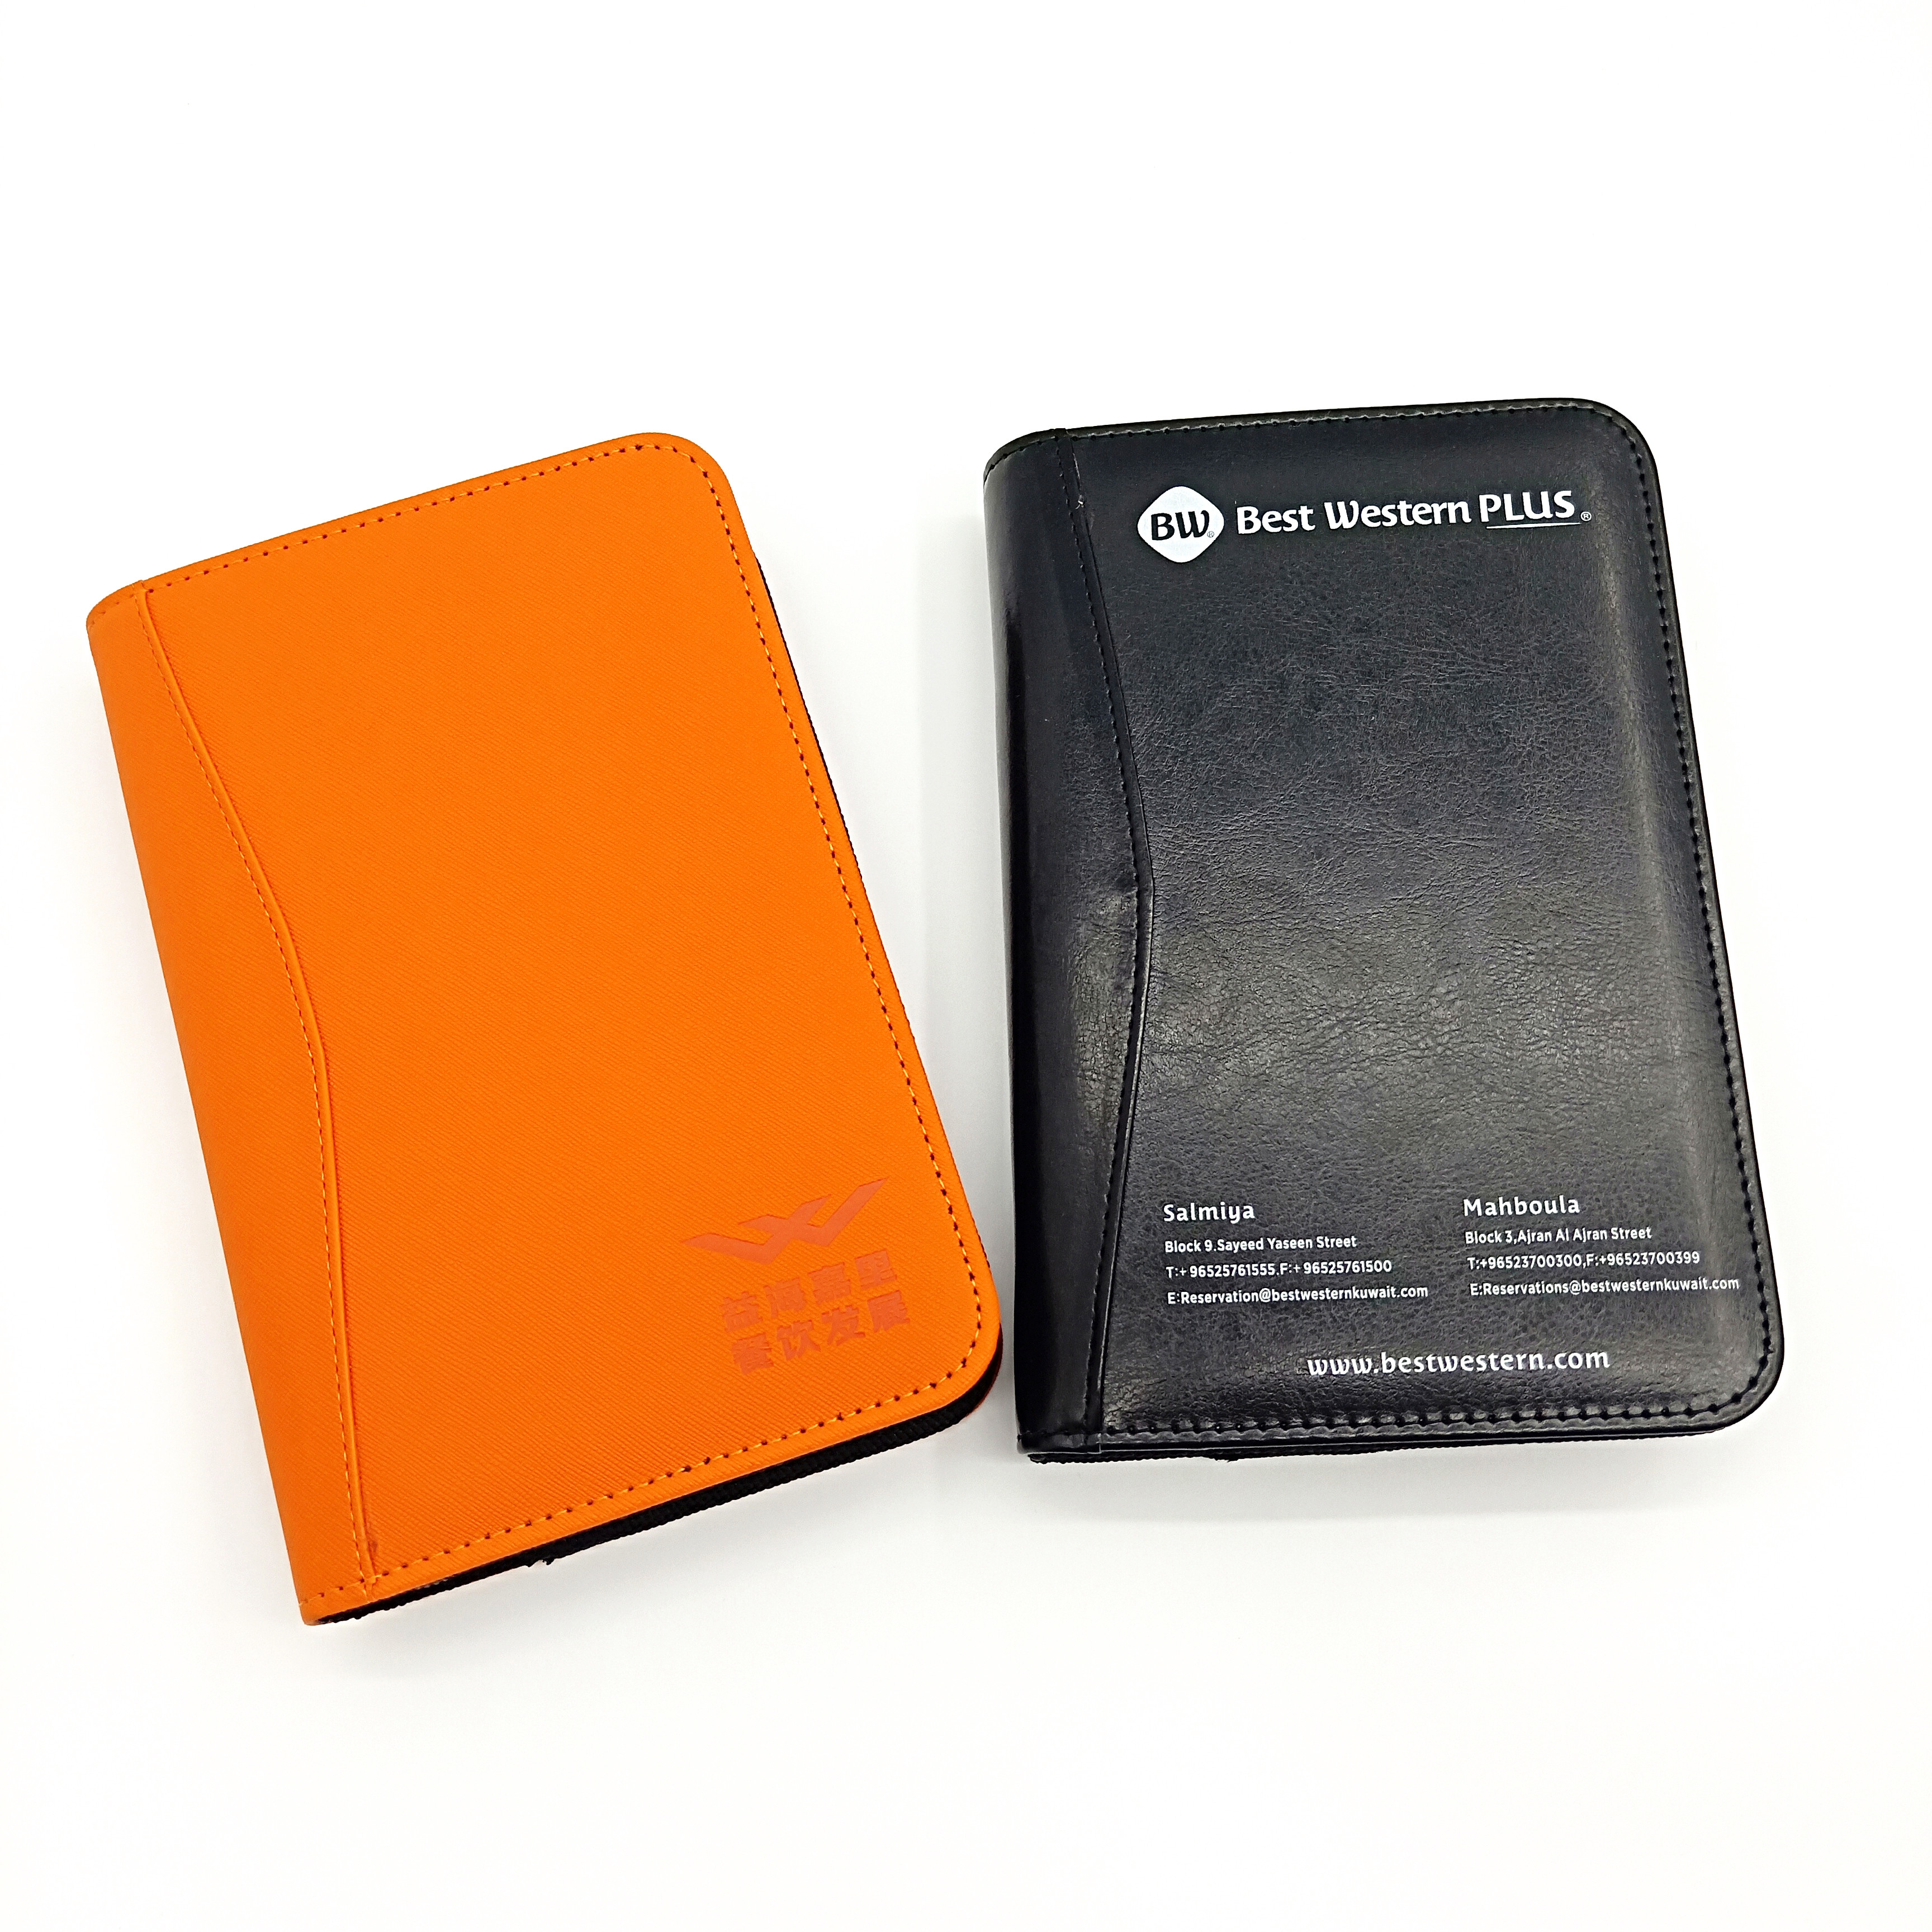 advertising pu leather cover a5 zippered padfolio&portfolio bag